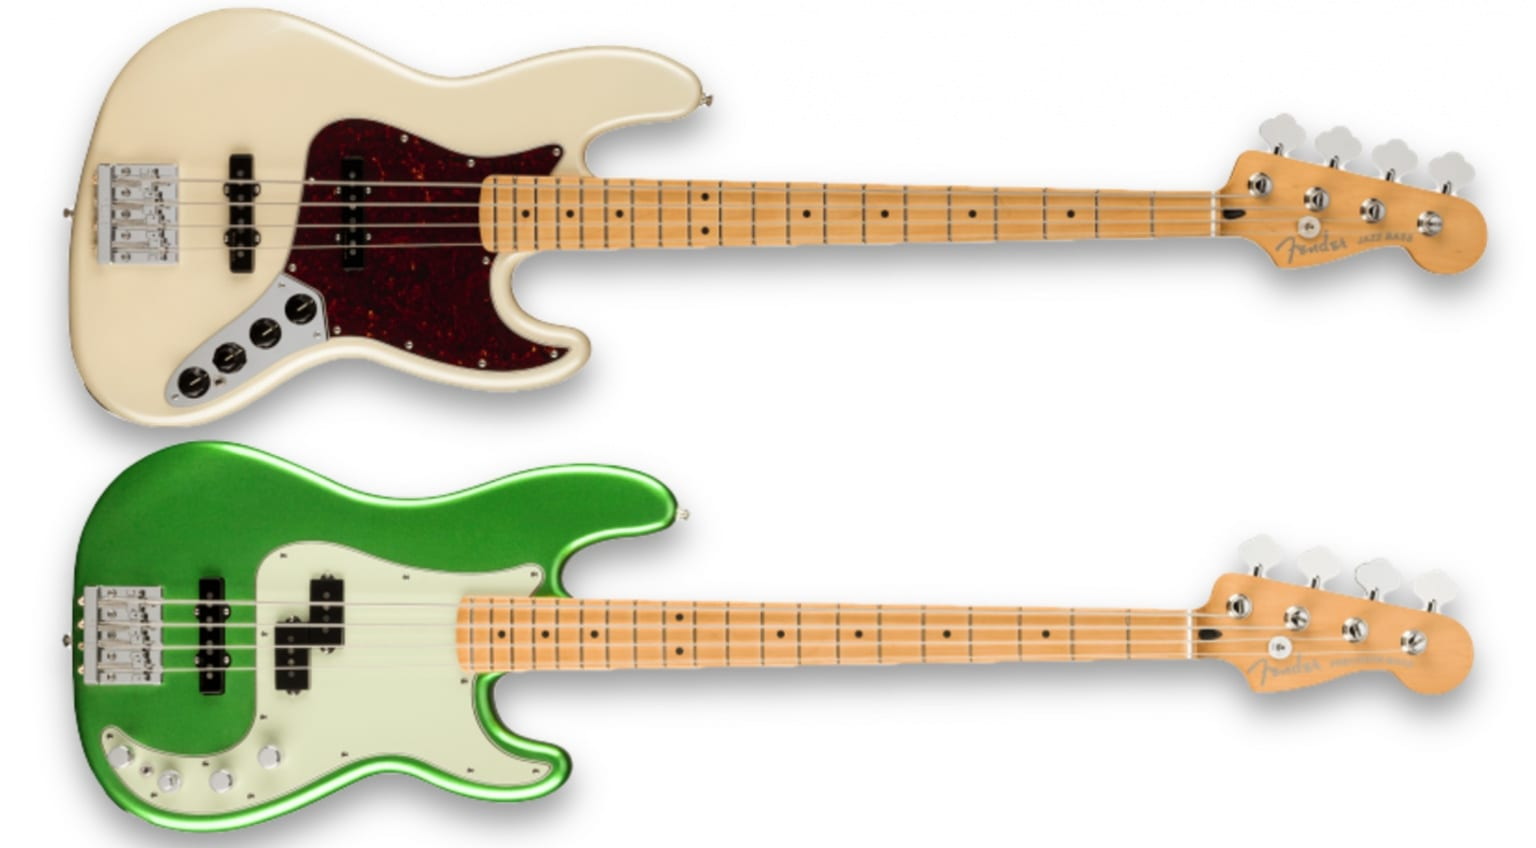 Jazz Bass & Precision Bass of the Player Plus Series